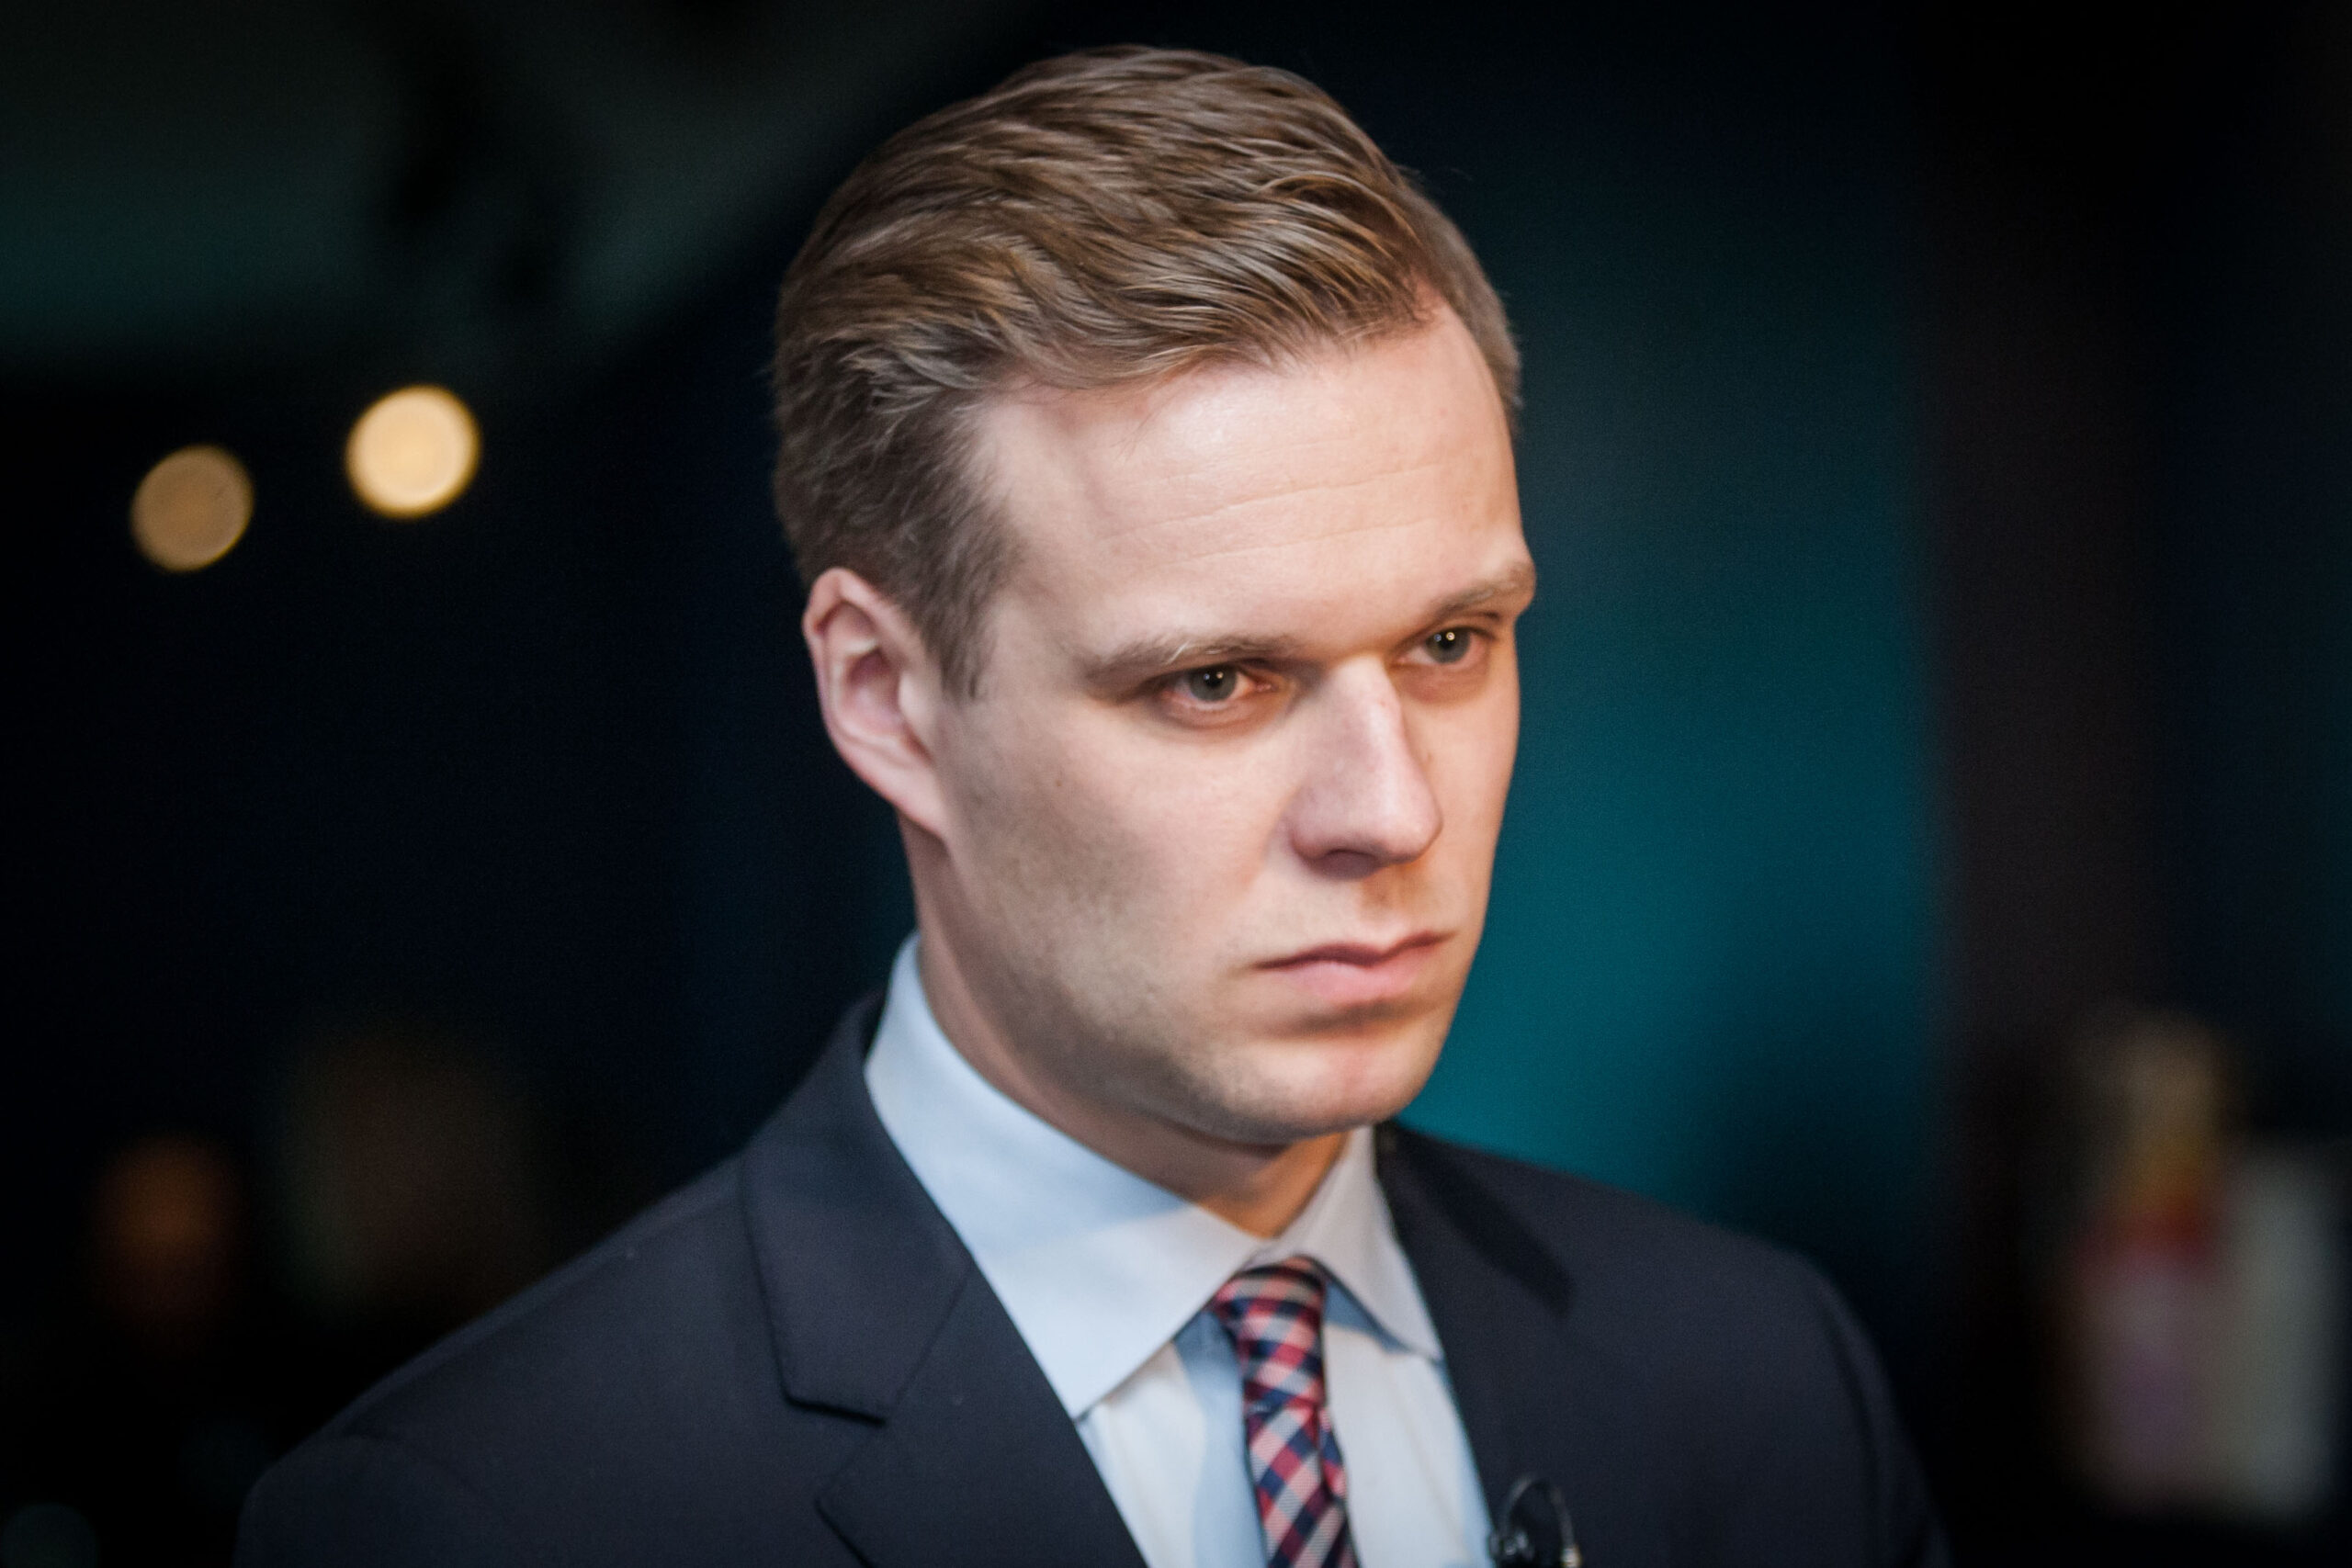 Lithuania wants Poland to be leader in region